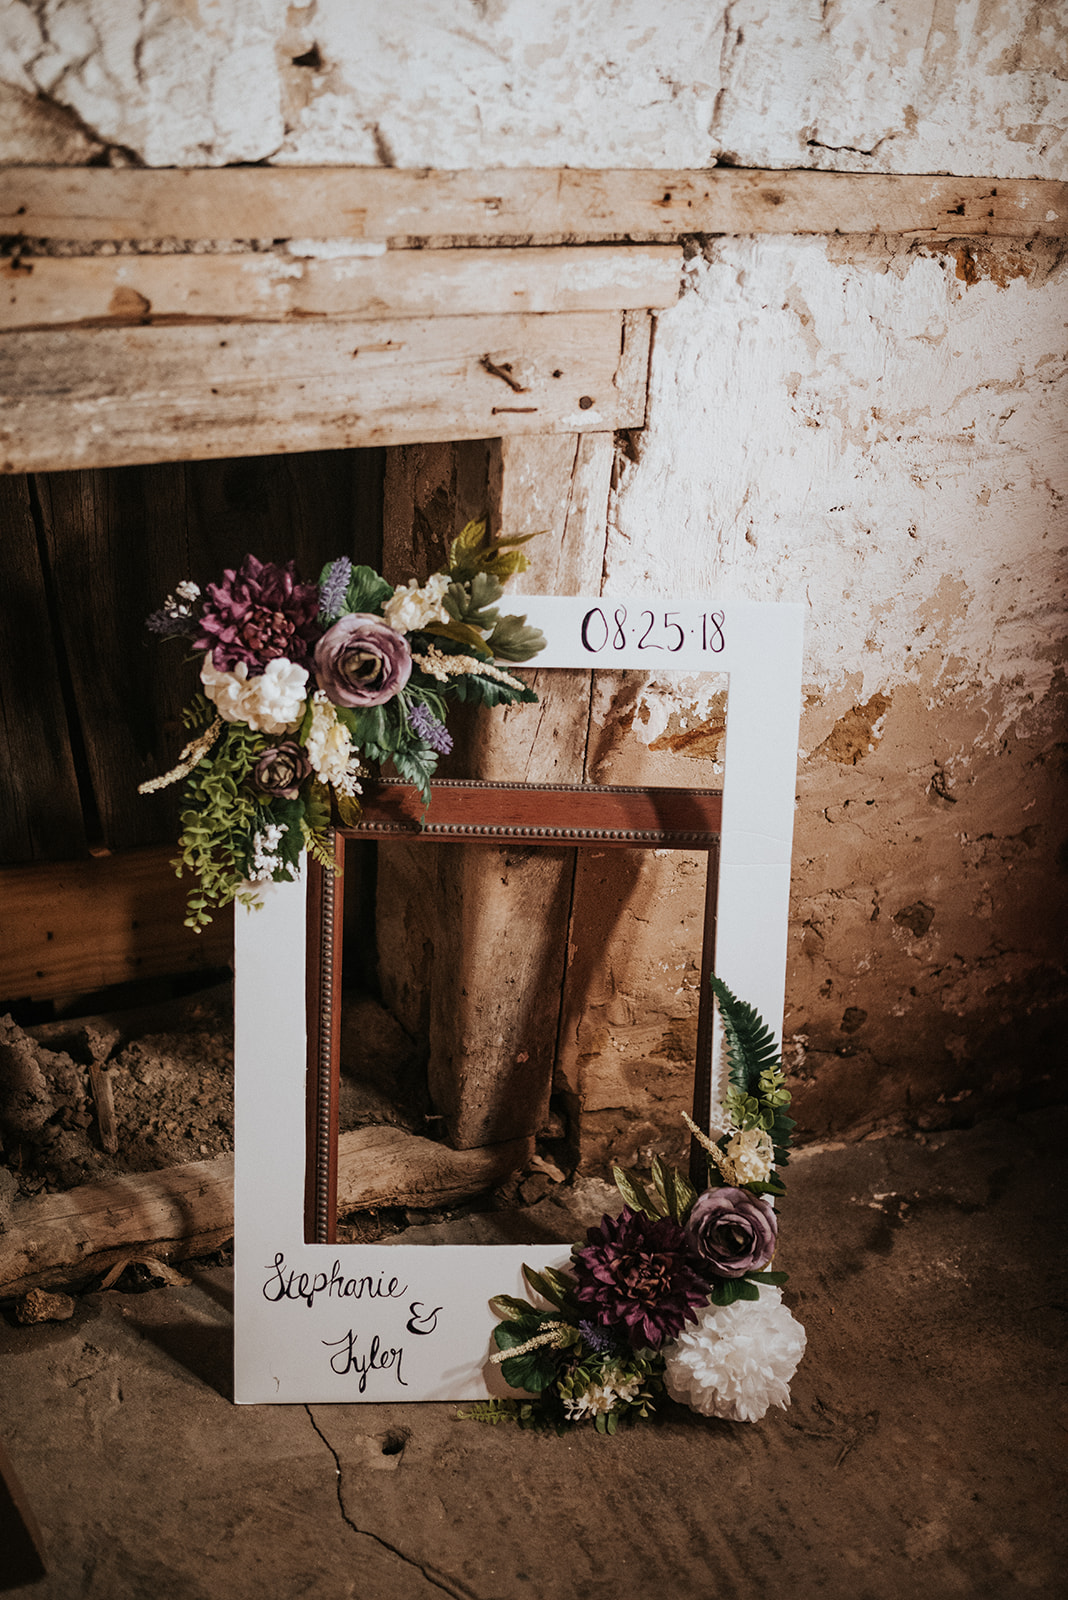 overthevineswisconsinwedding_1640.jpg